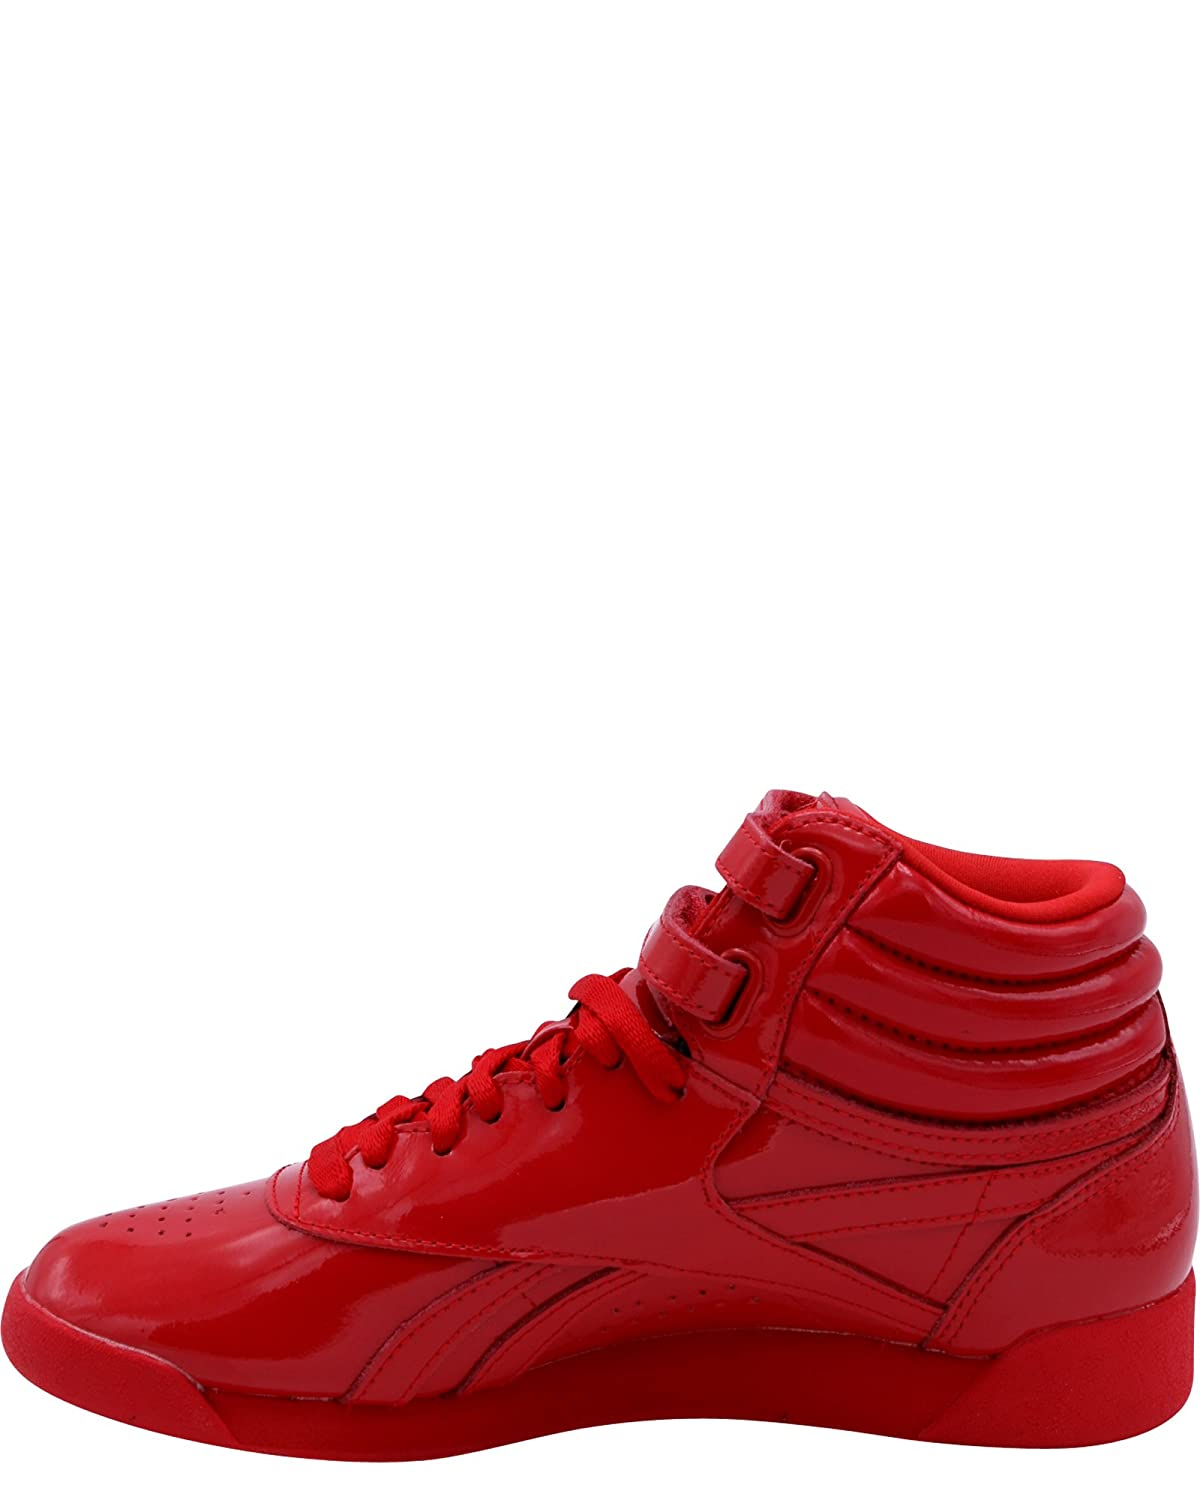 Amazon.com | Reebok Womens Freestyle Hi Patent Sneakers, Red, 7.5 | Walking